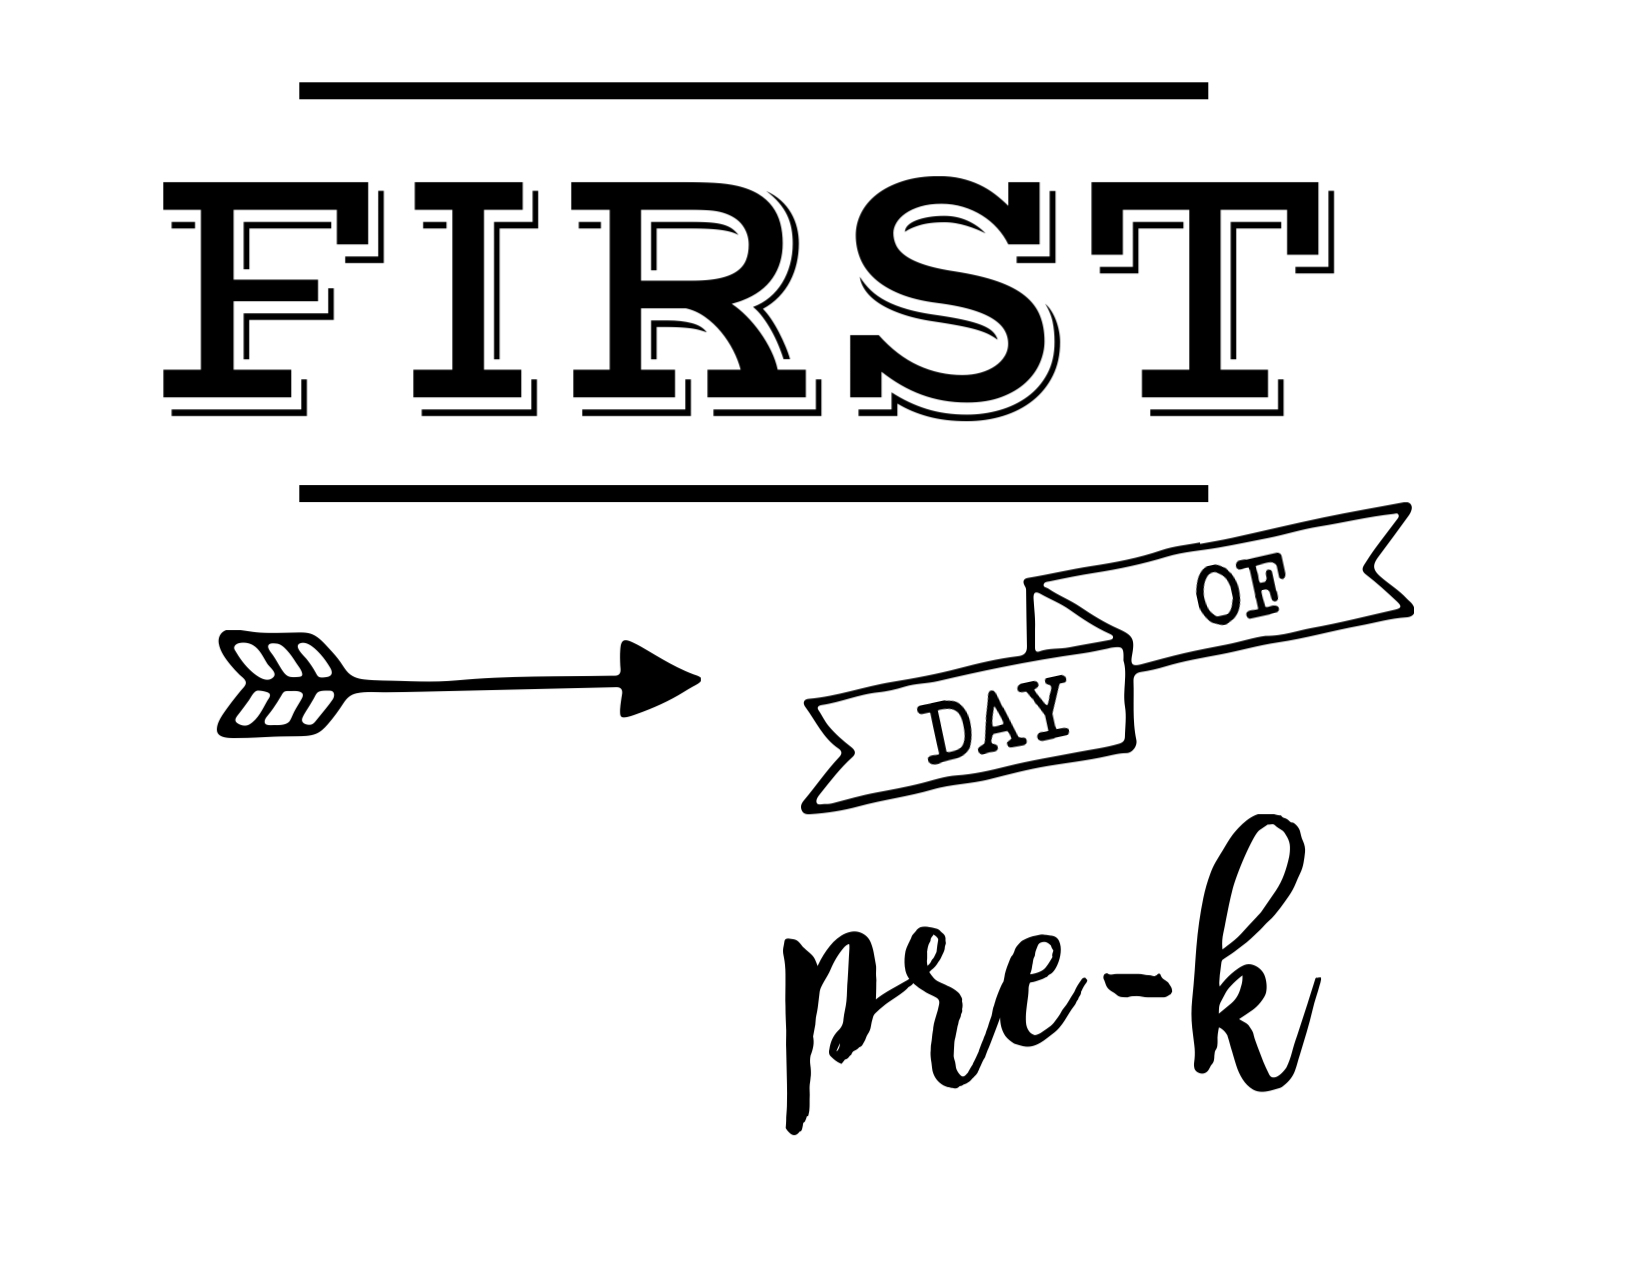 photograph relating to First Day of Pre K Sign Printable named To start with Working day Of Pre K WV92 Advancedmagebysara